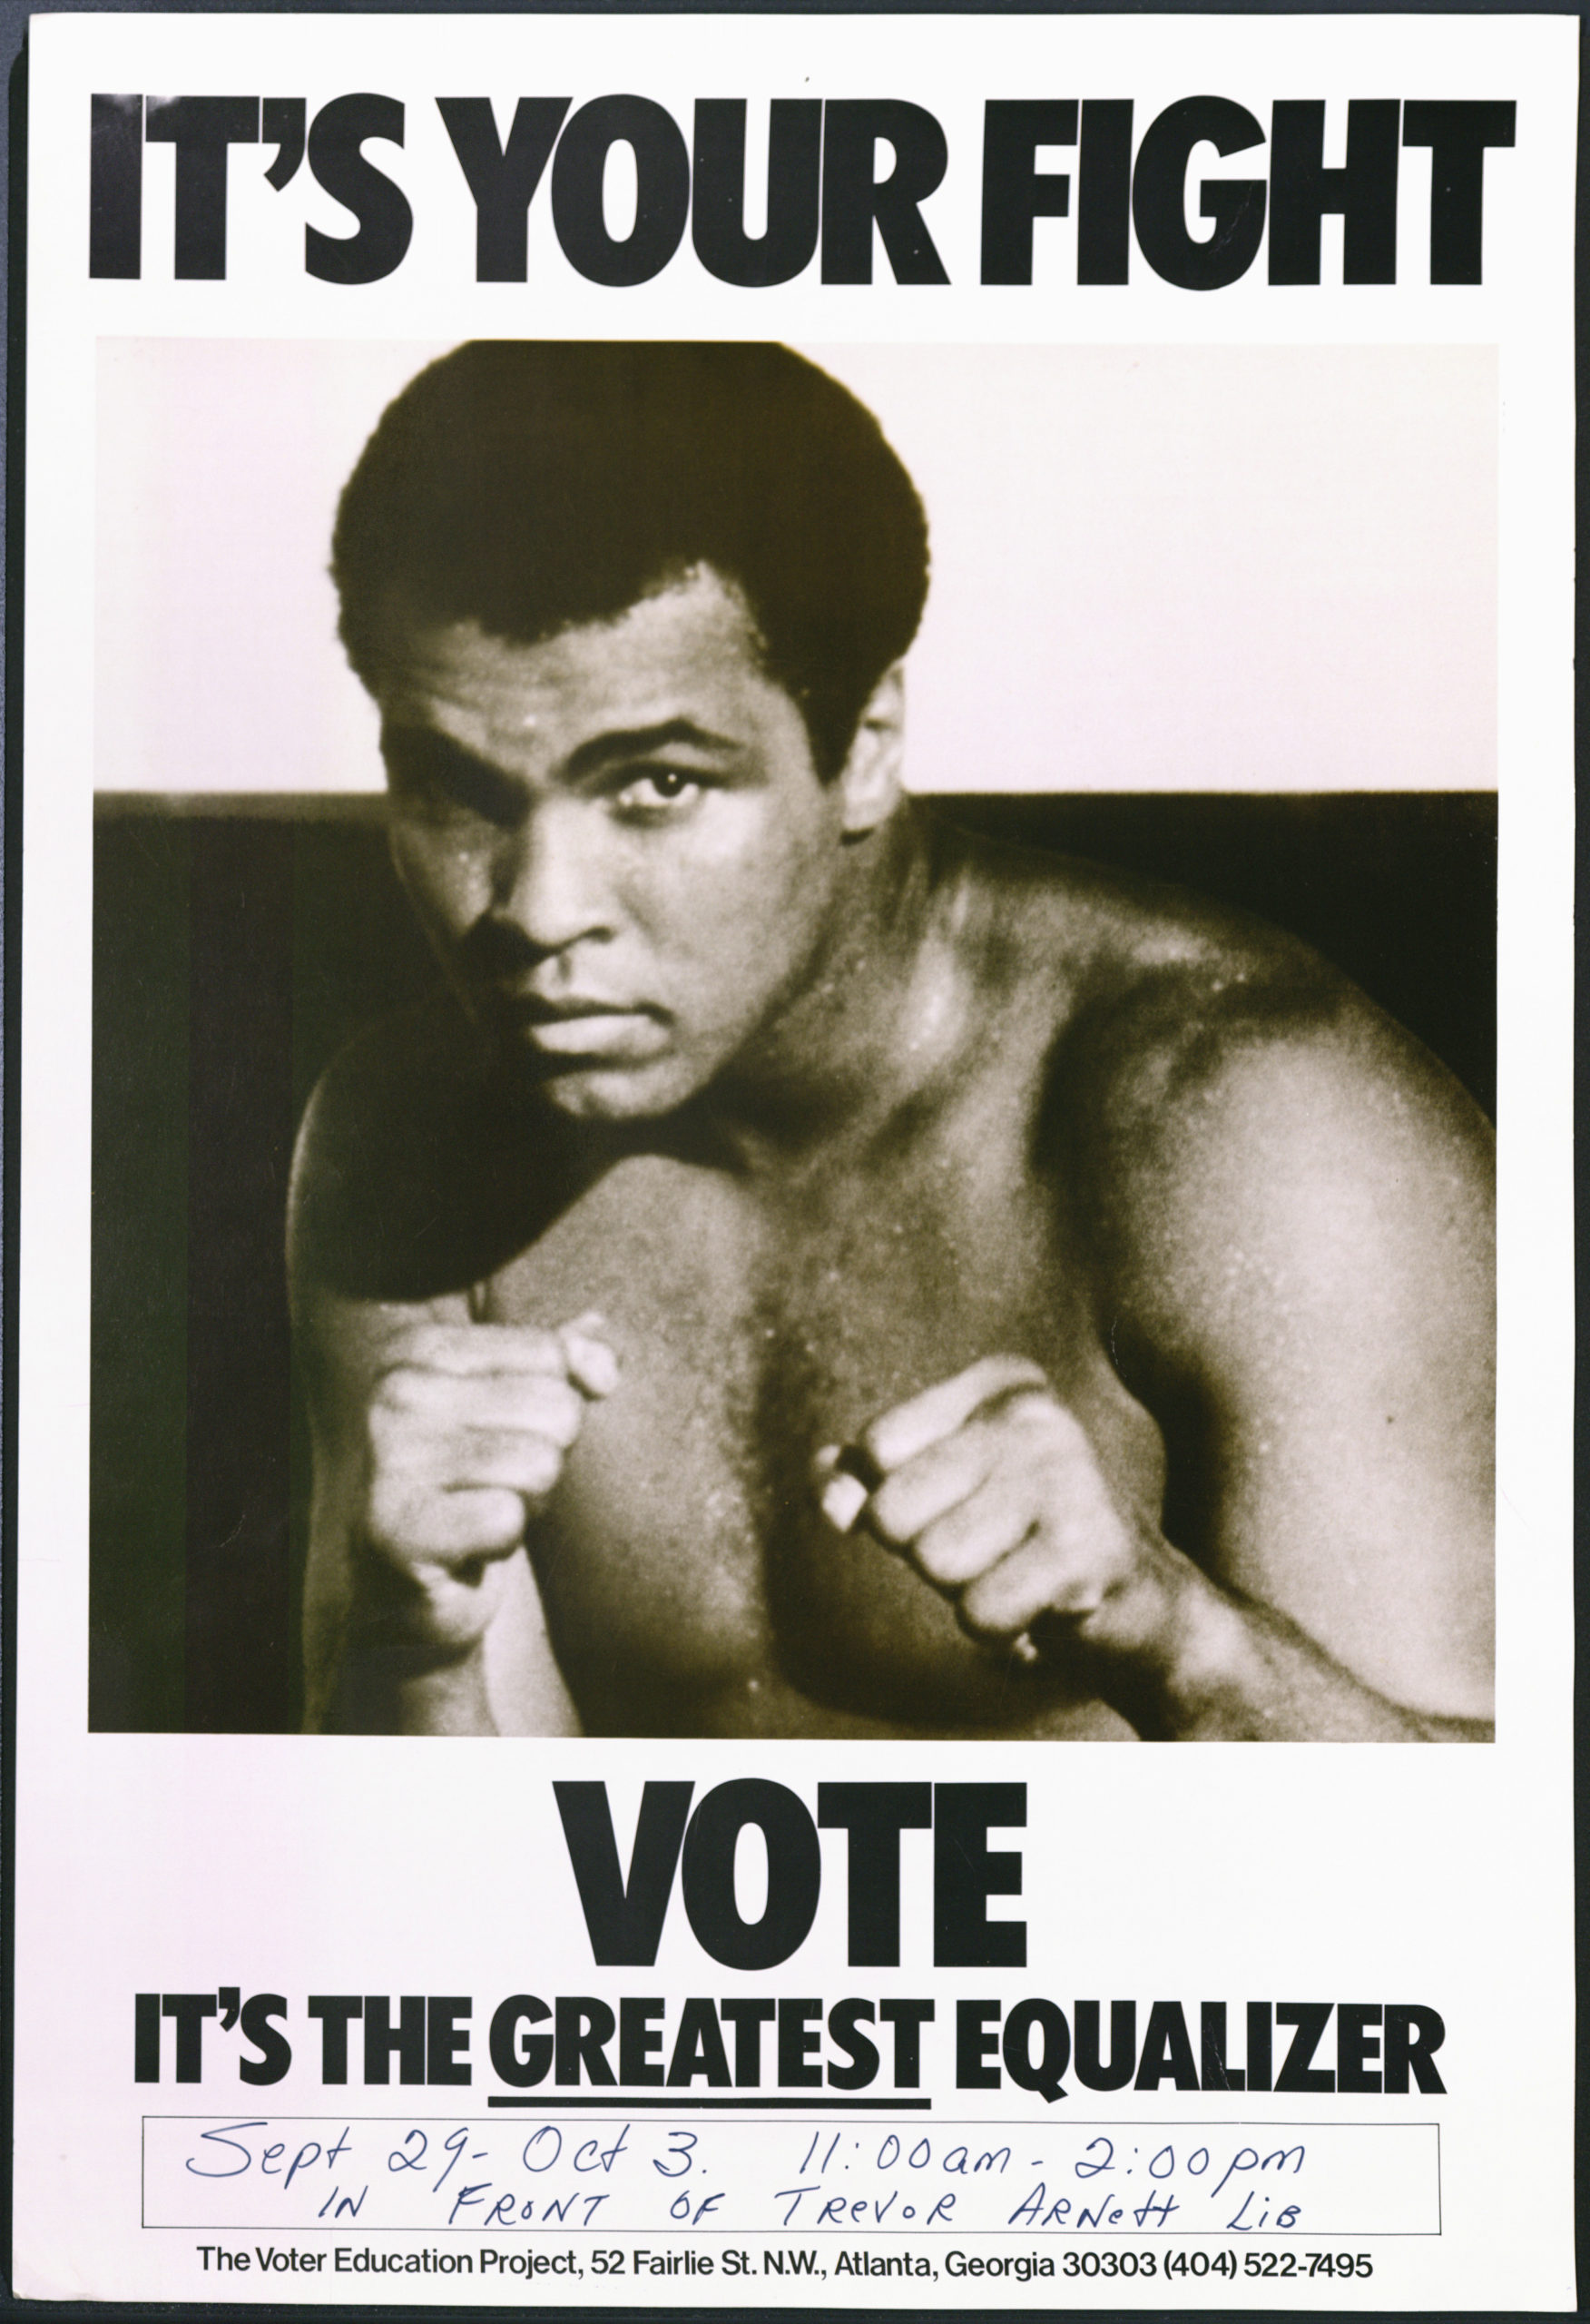 It's Your Fight, circa 1970Political Posters Collection